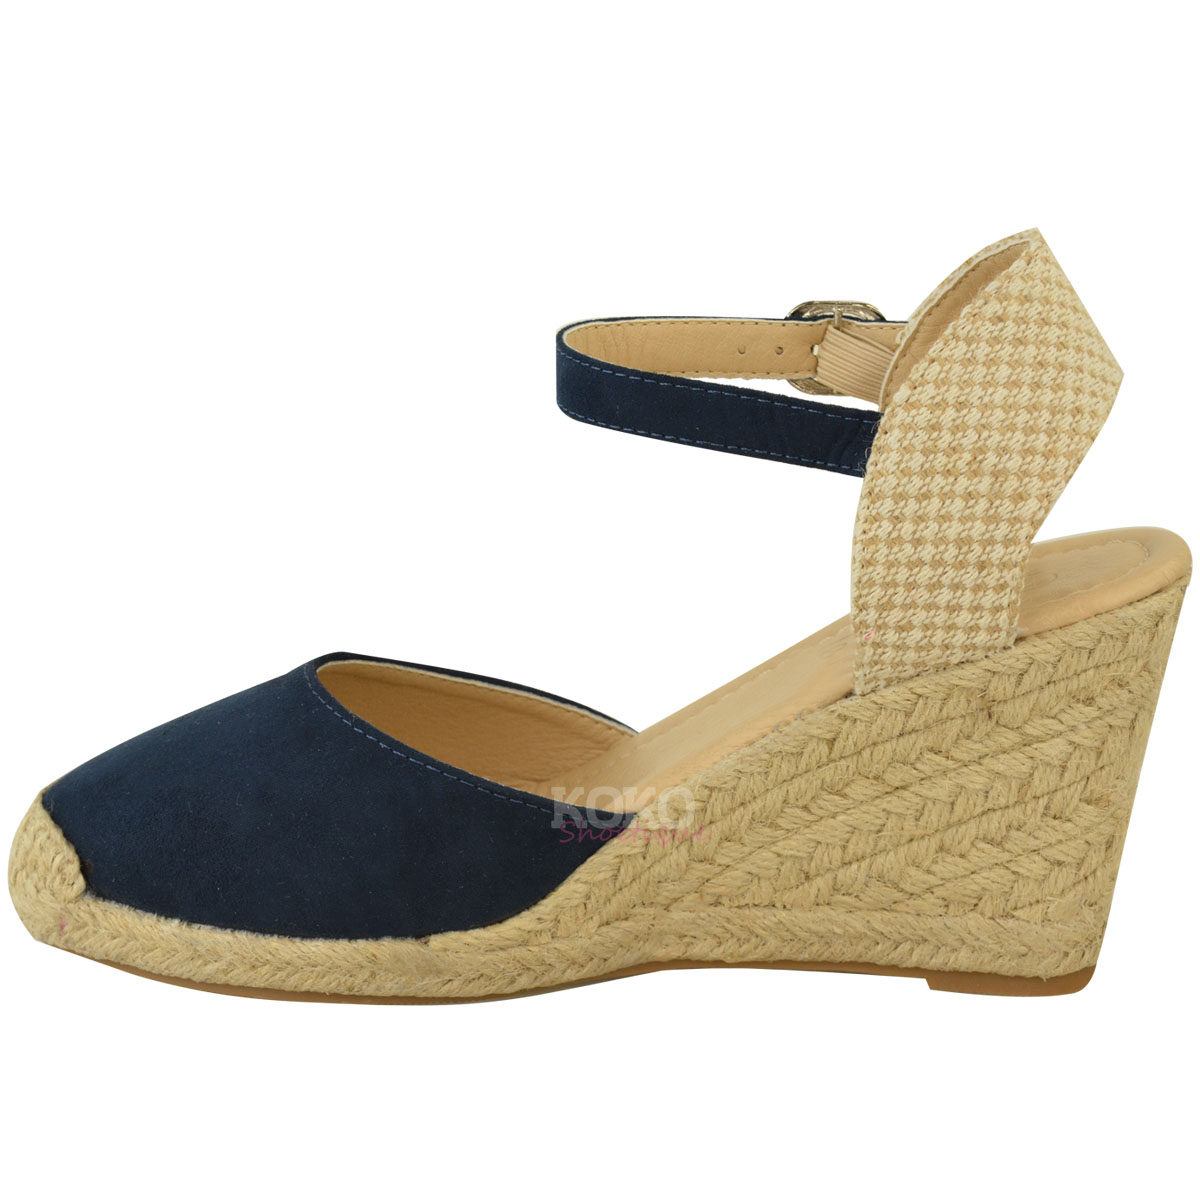 Summer Espadrilles Shoes